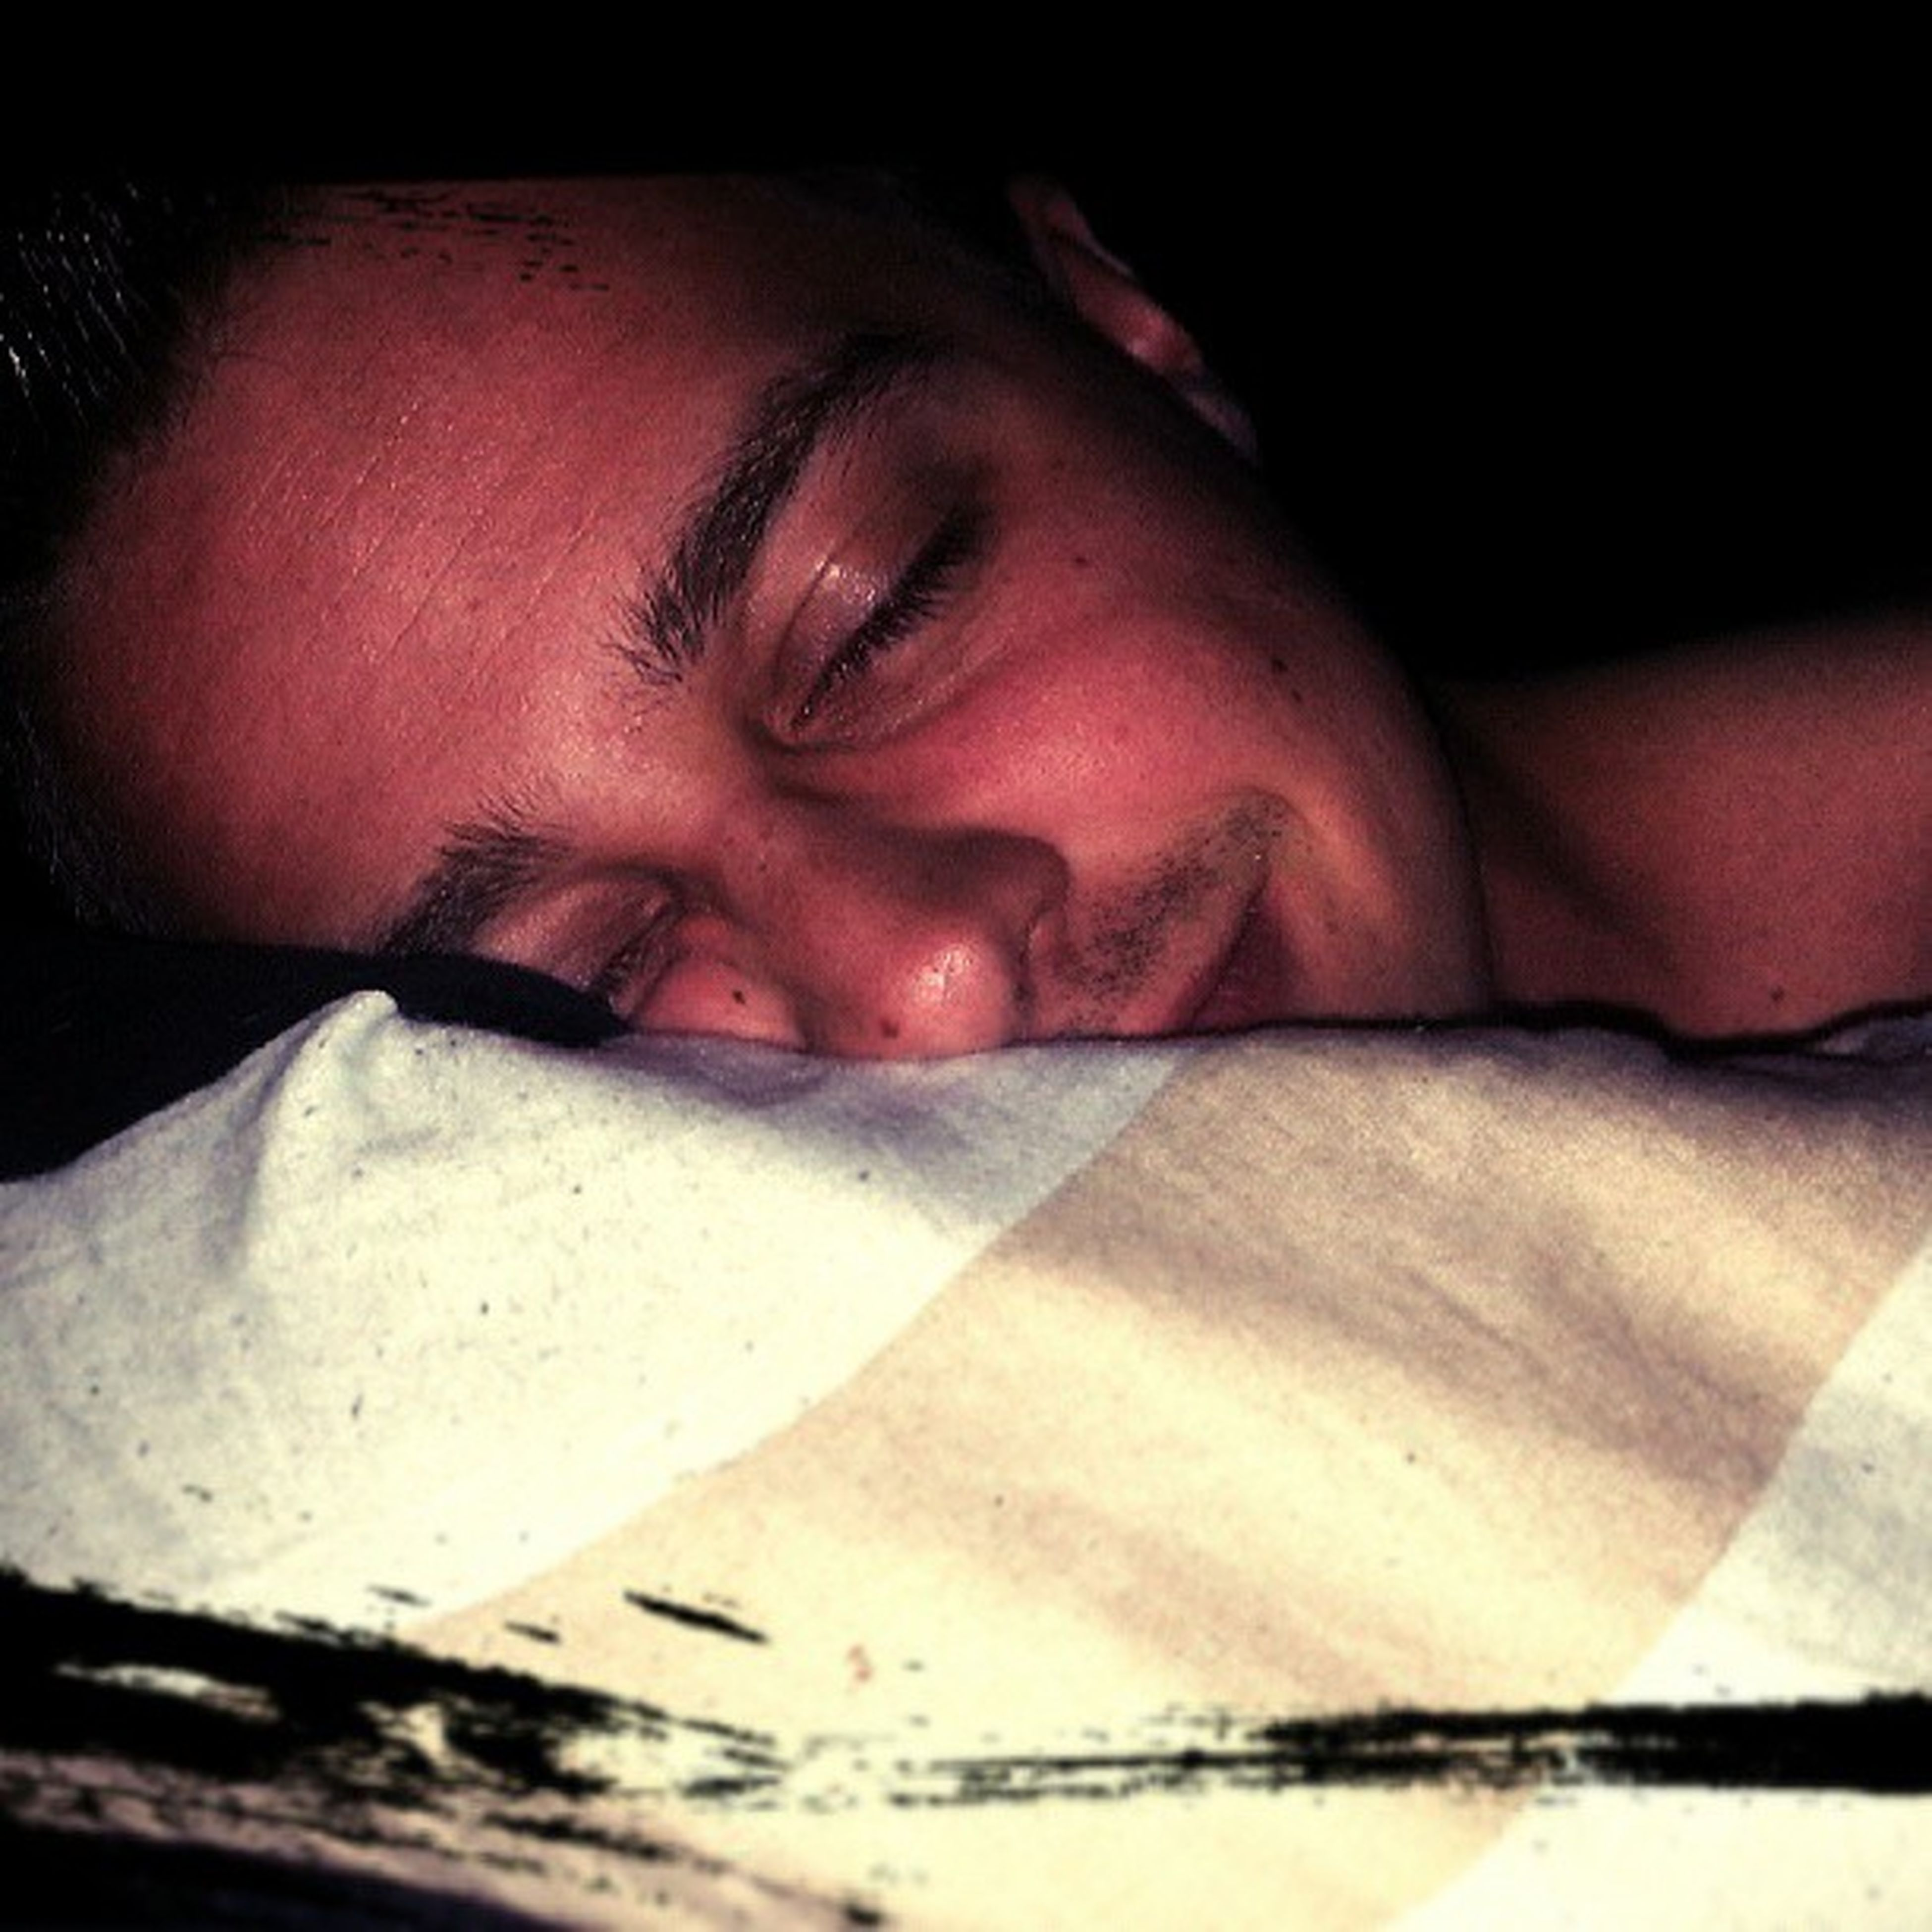 person, indoors, lifestyles, headshot, close-up, eyes closed, young adult, relaxation, front view, leisure activity, portrait, sleeping, looking at camera, young men, mid adult, bed, human face, mid adult men